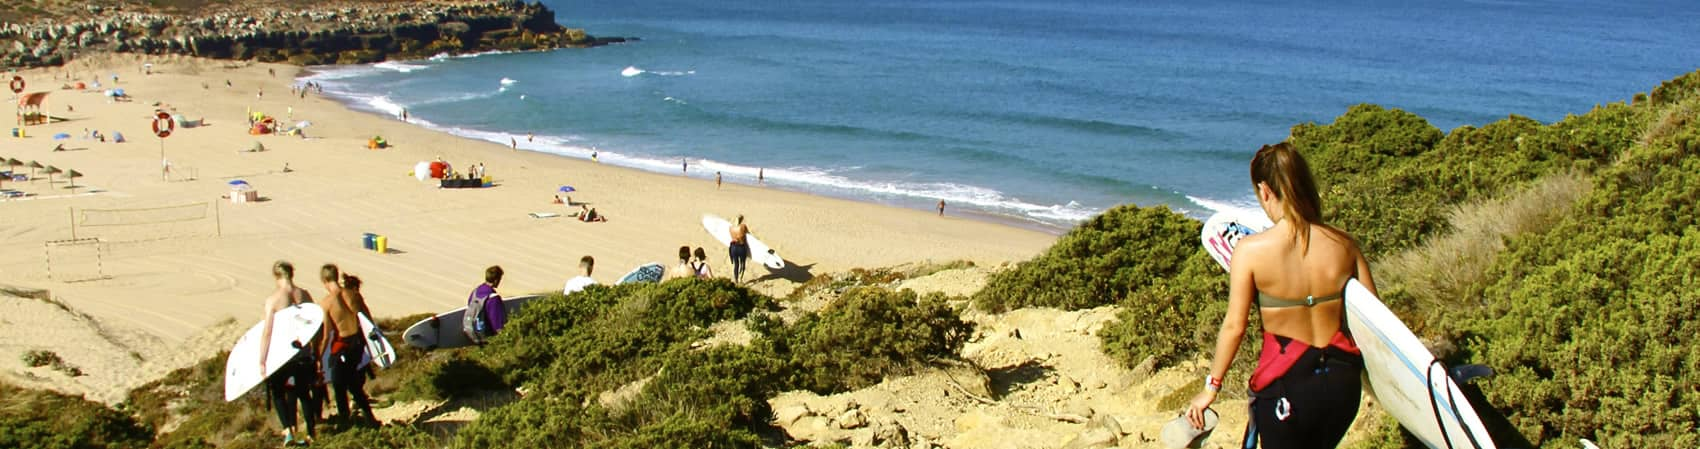 Surf Holidays in Ericeira